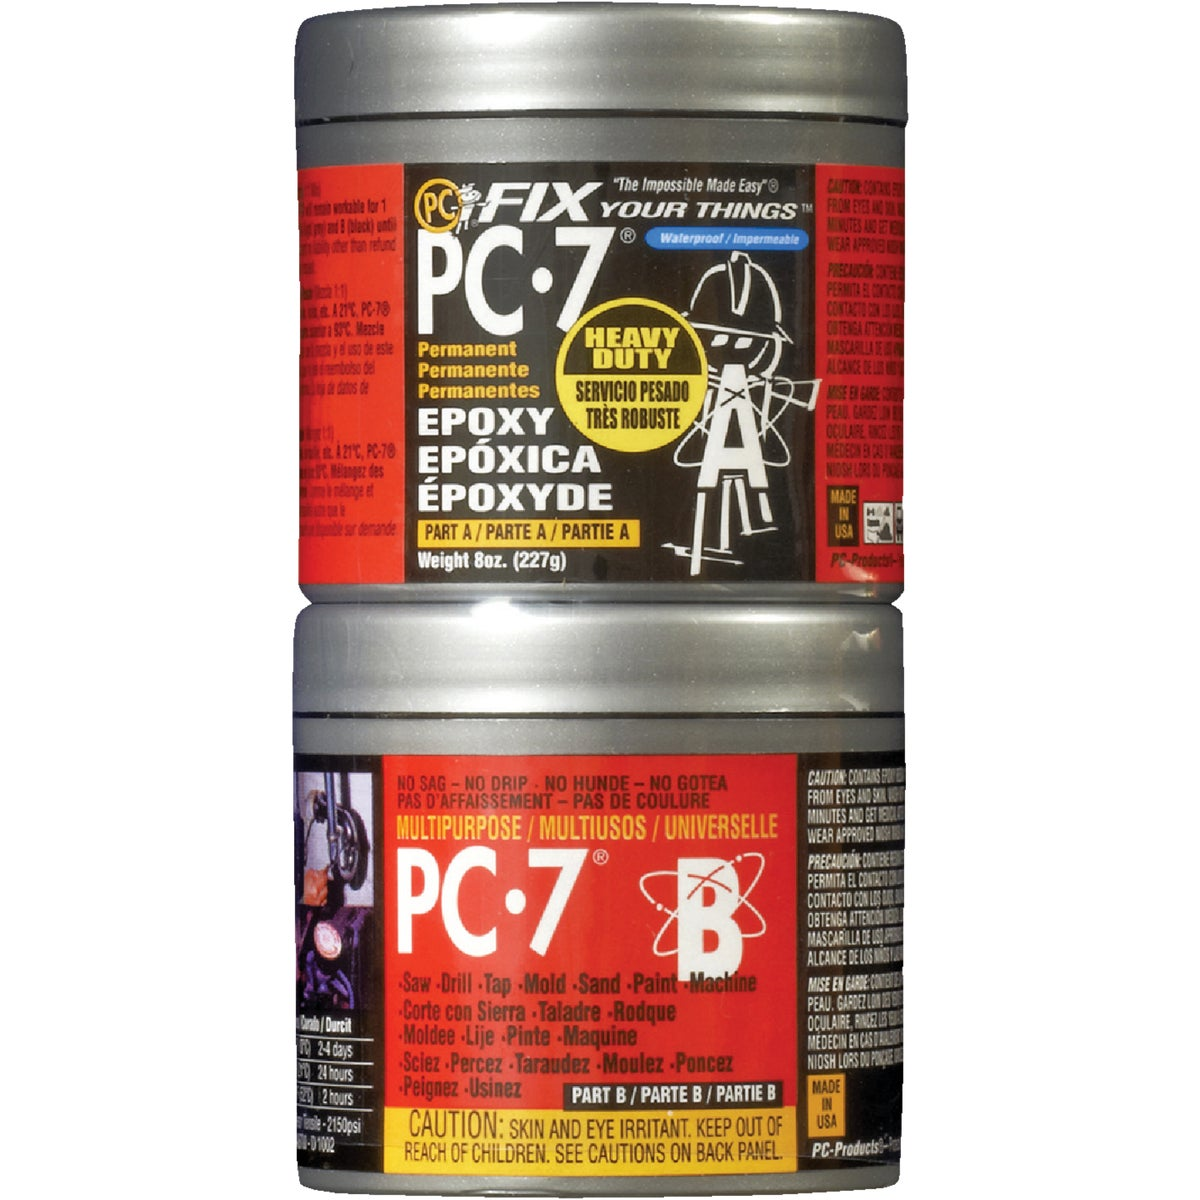 1/2LB PC-7 EPOXY PASTE - PC-7-1/2LB by Protective Coating